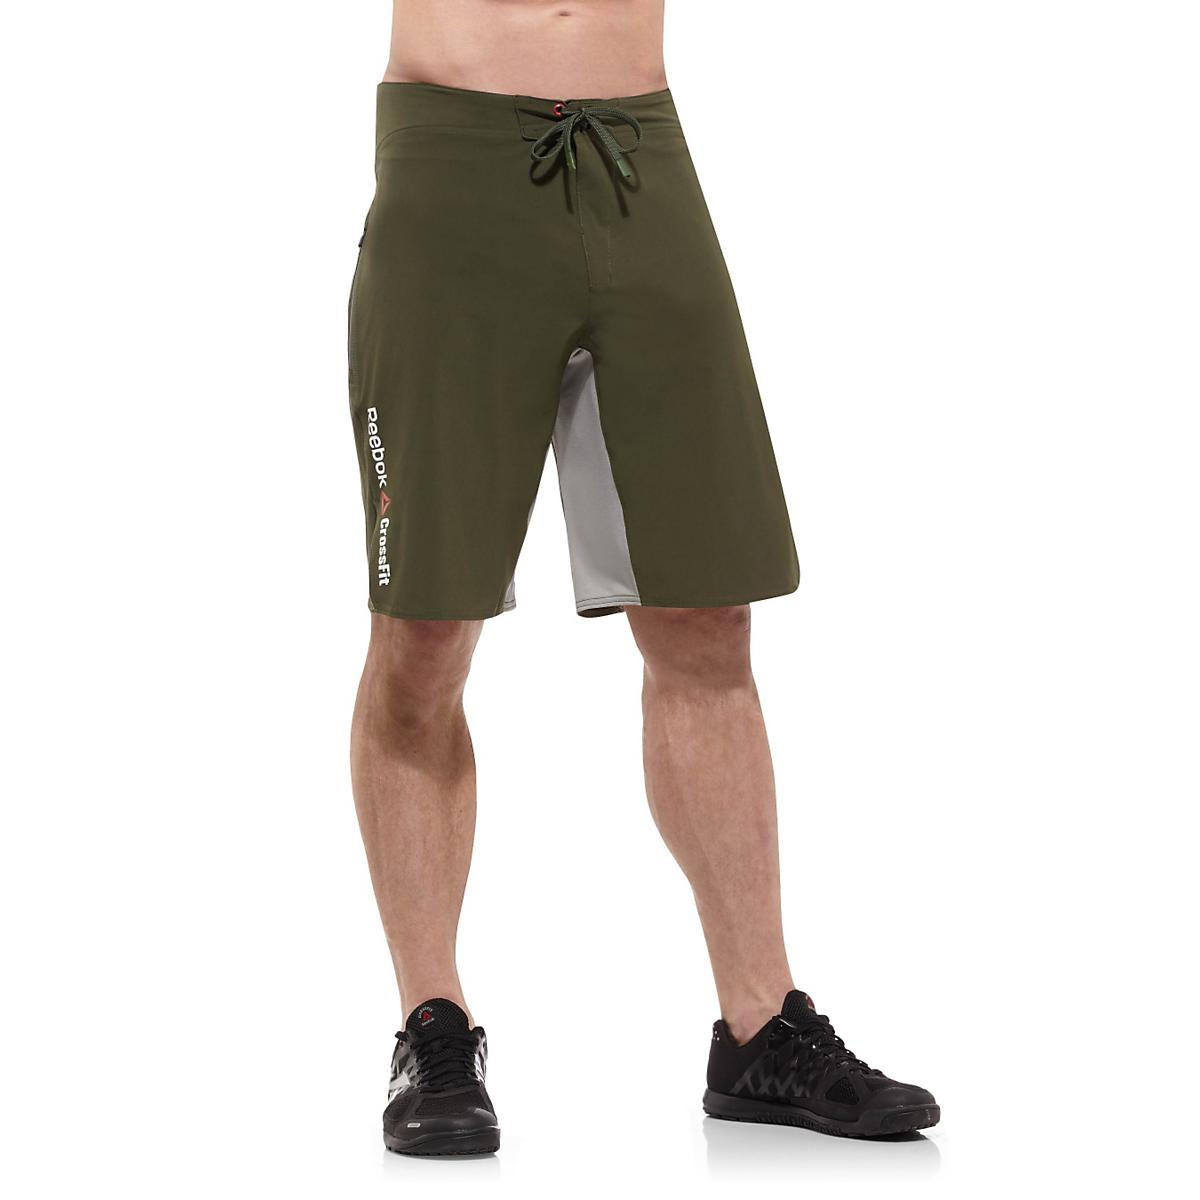 d54205ff89a6 Mens Reebok CrossFit Solid Board Unlined Shorts at Road Runner Sports